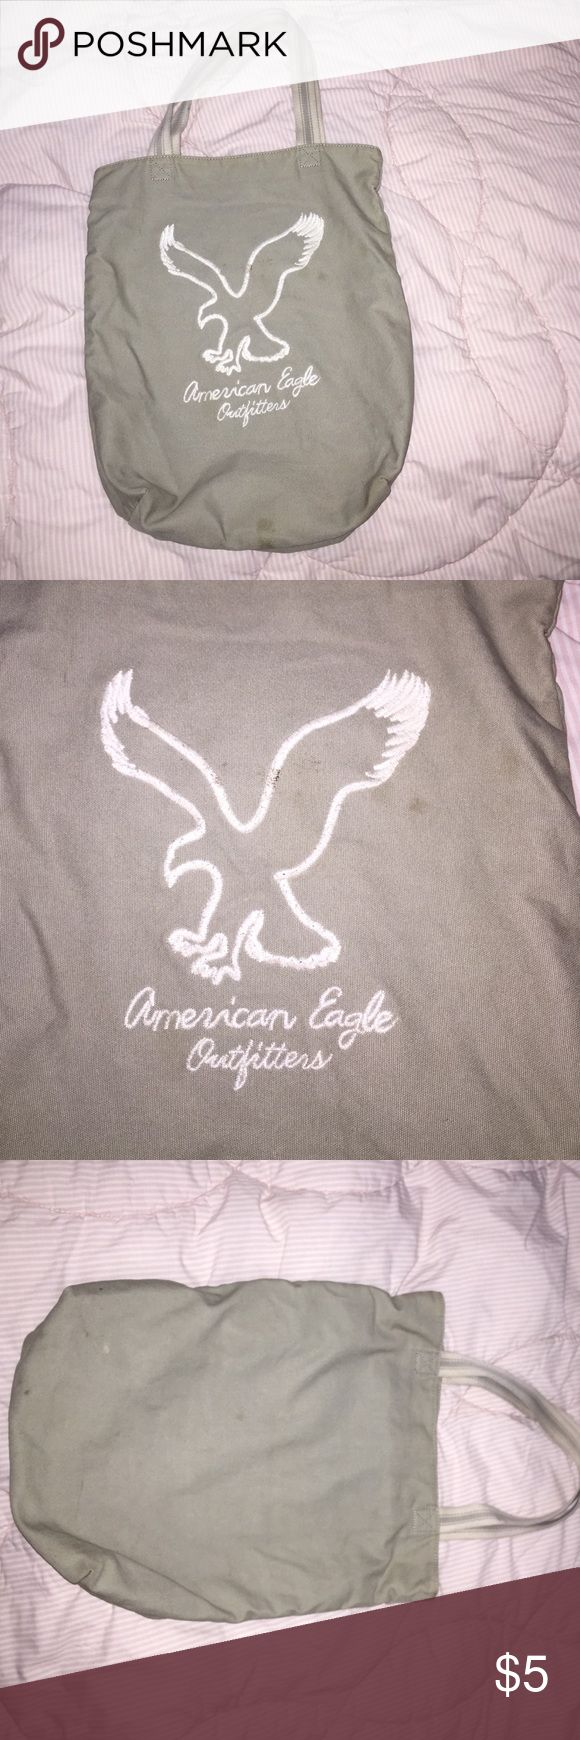 Grey American Eagle tote Grey American Eagle tote bag. Faded in color and slight marks and imperfections. Bags Totes